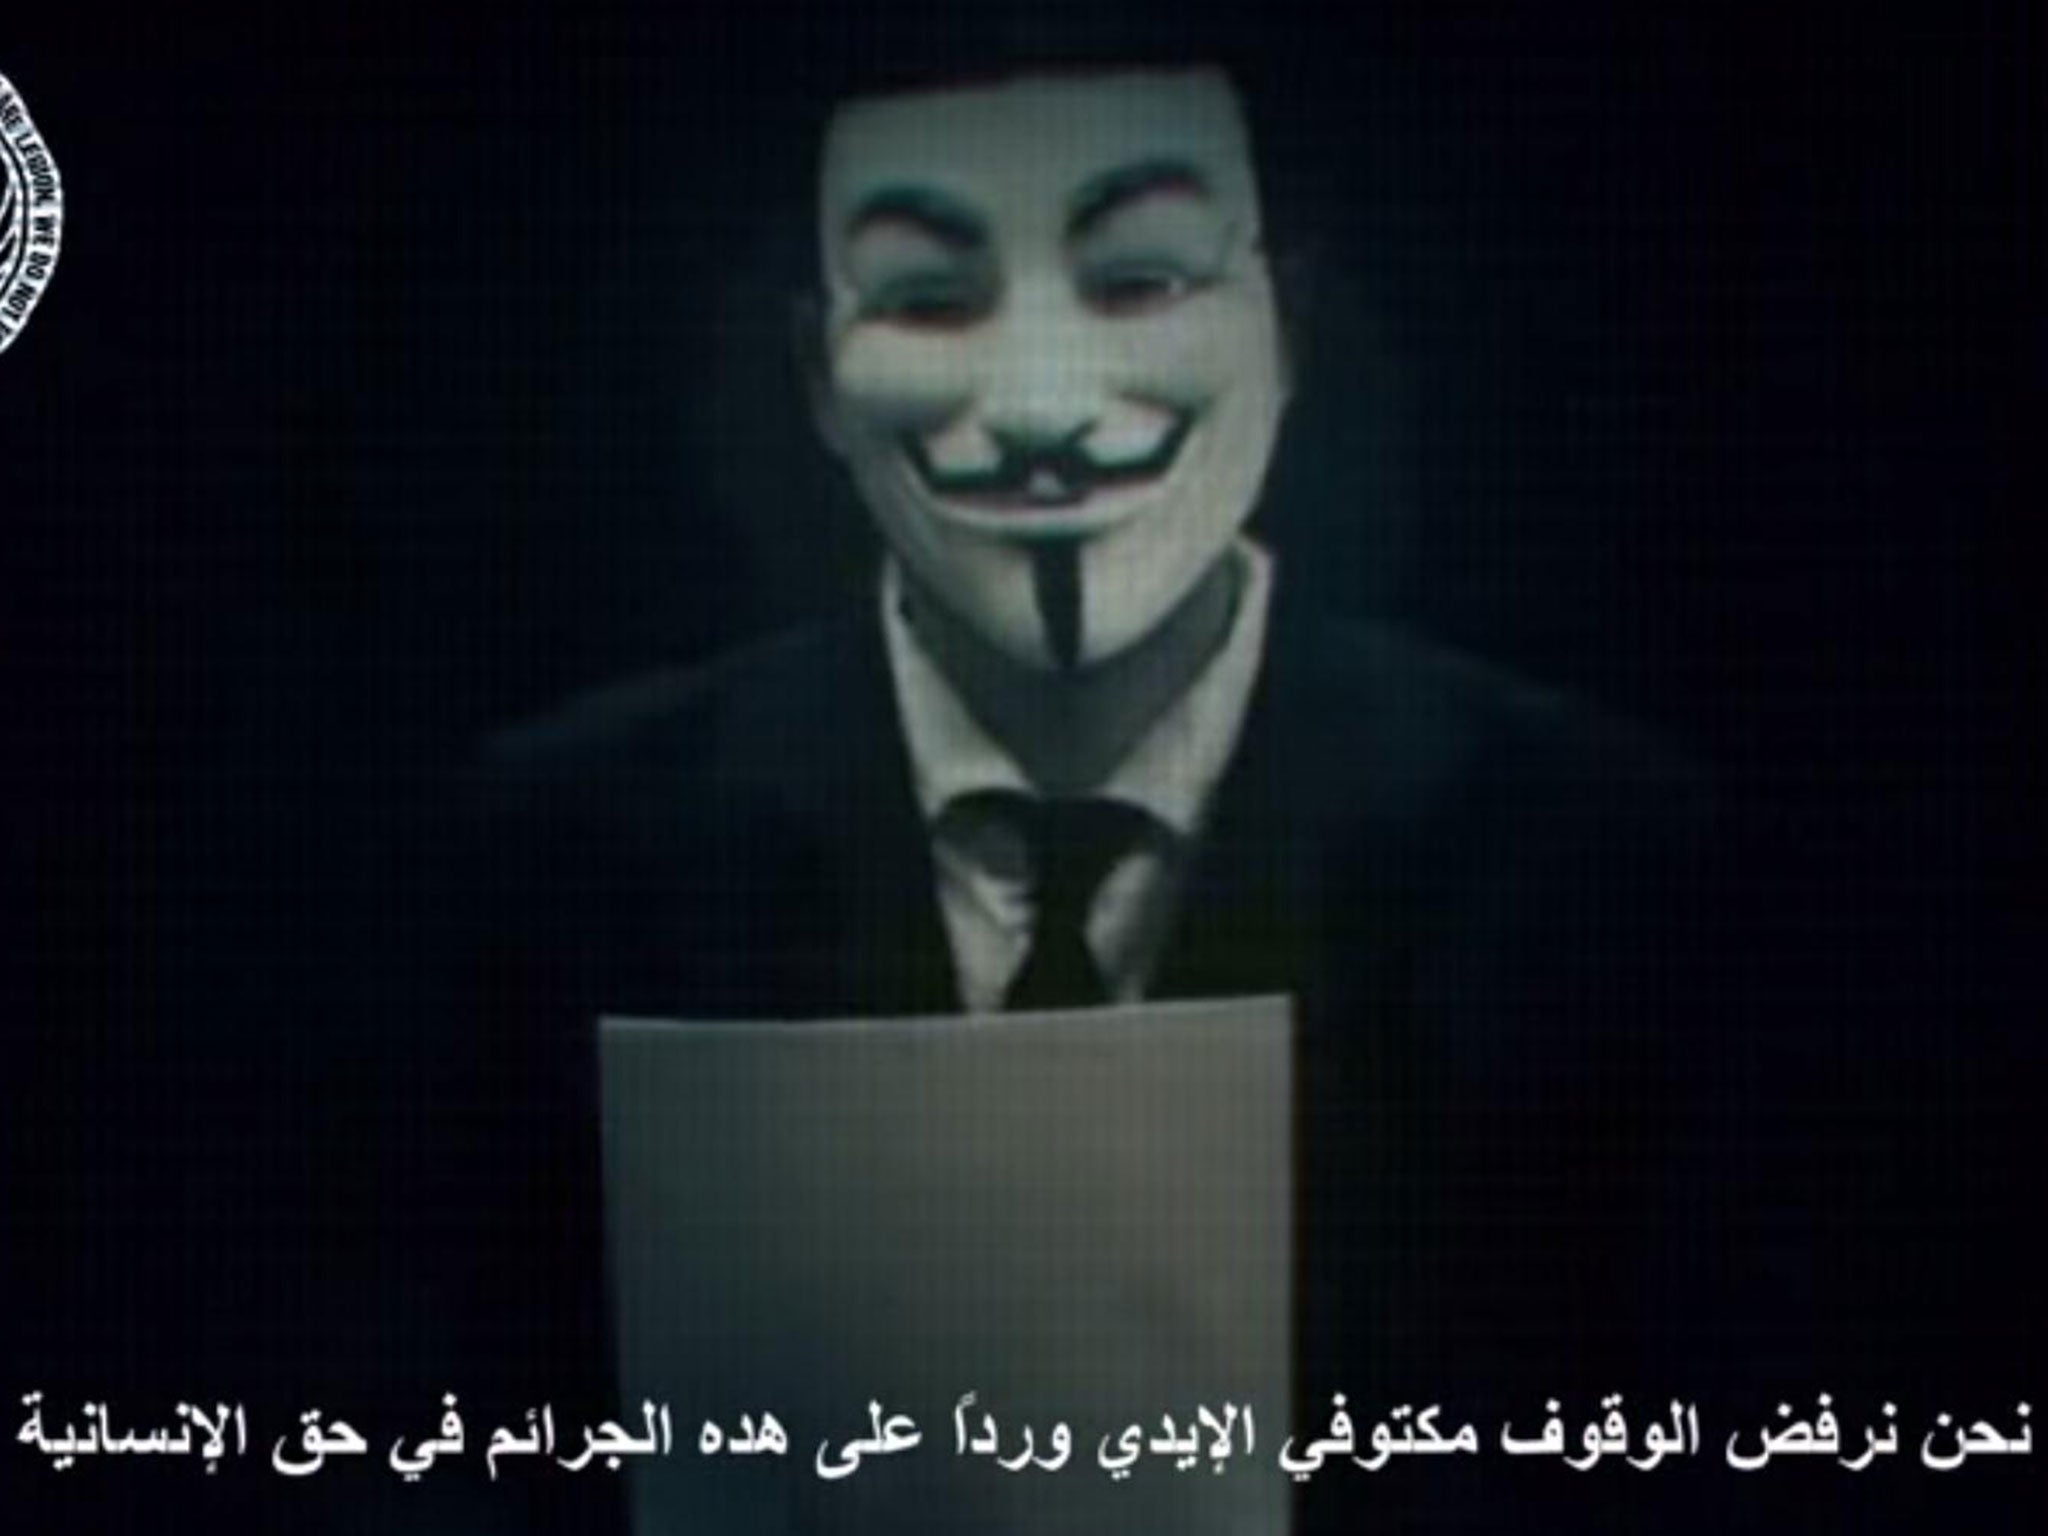 Anonymous vows to wreak 'electronic holocaust' on Israel for 'crimes